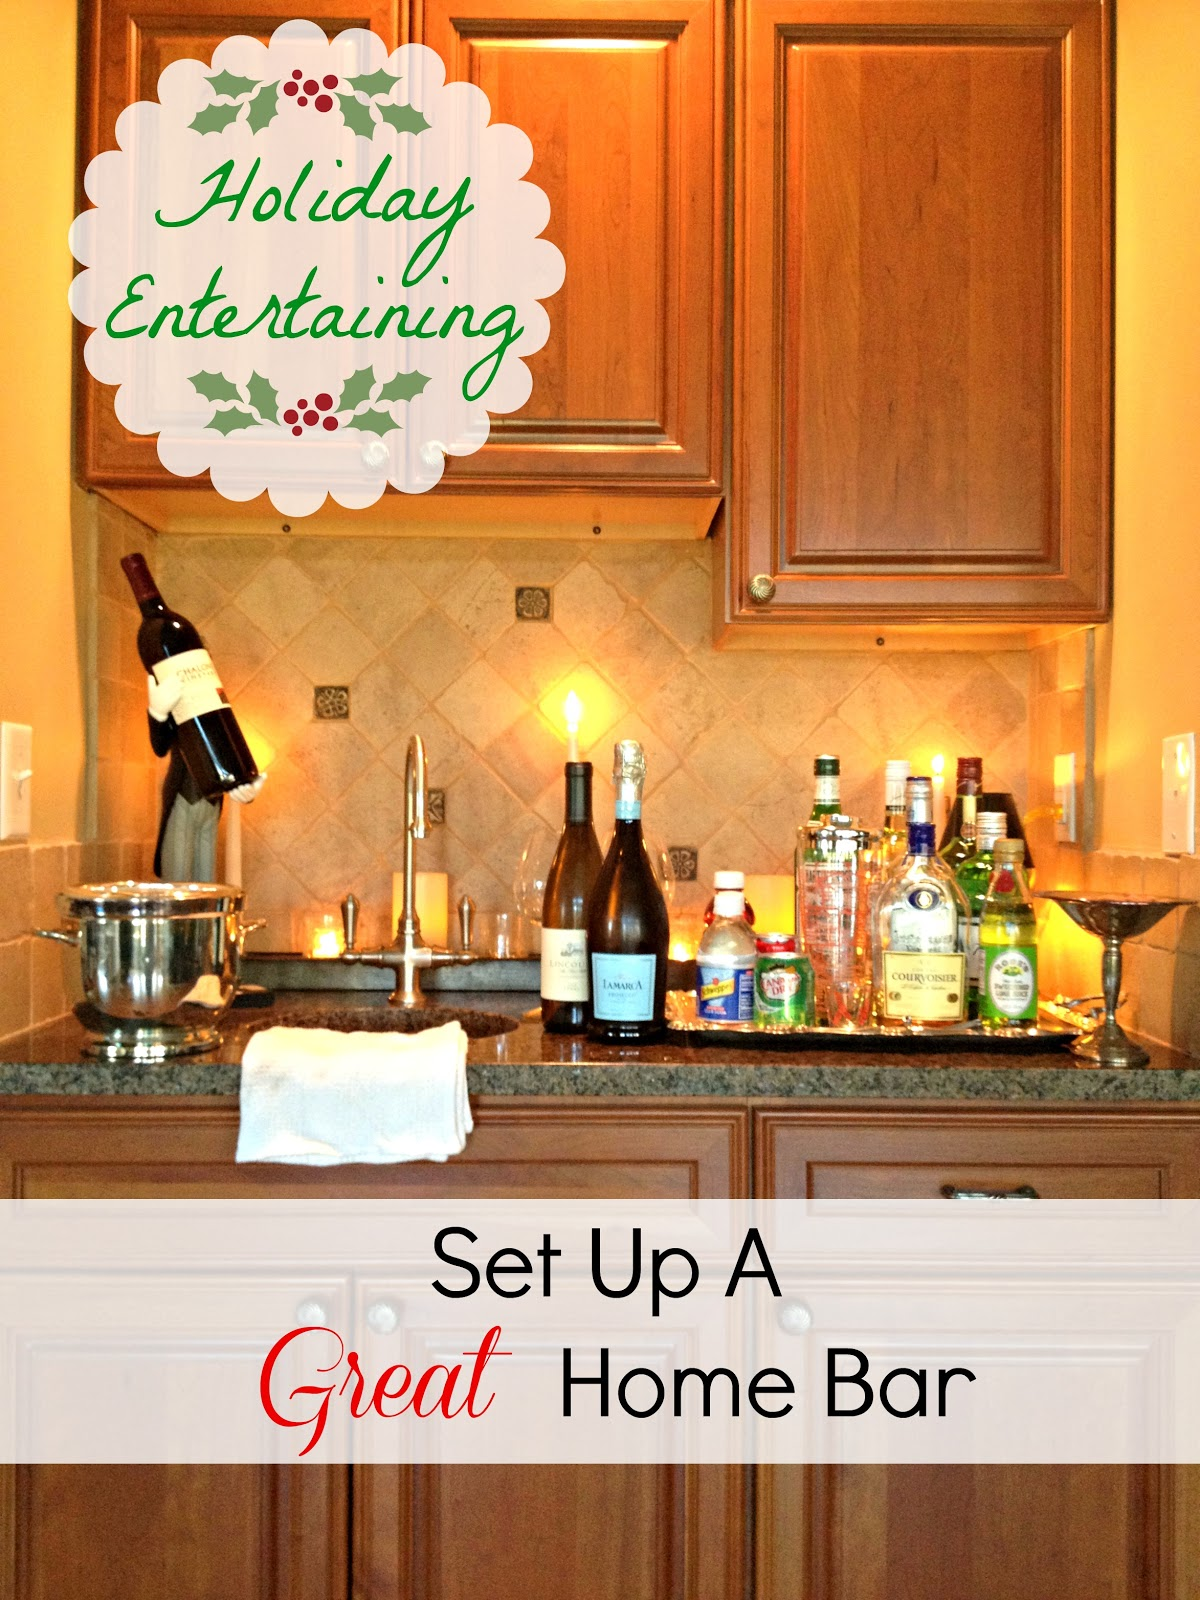 Decor Amore: How to Set Up a Home Bar for The Holiday\'s